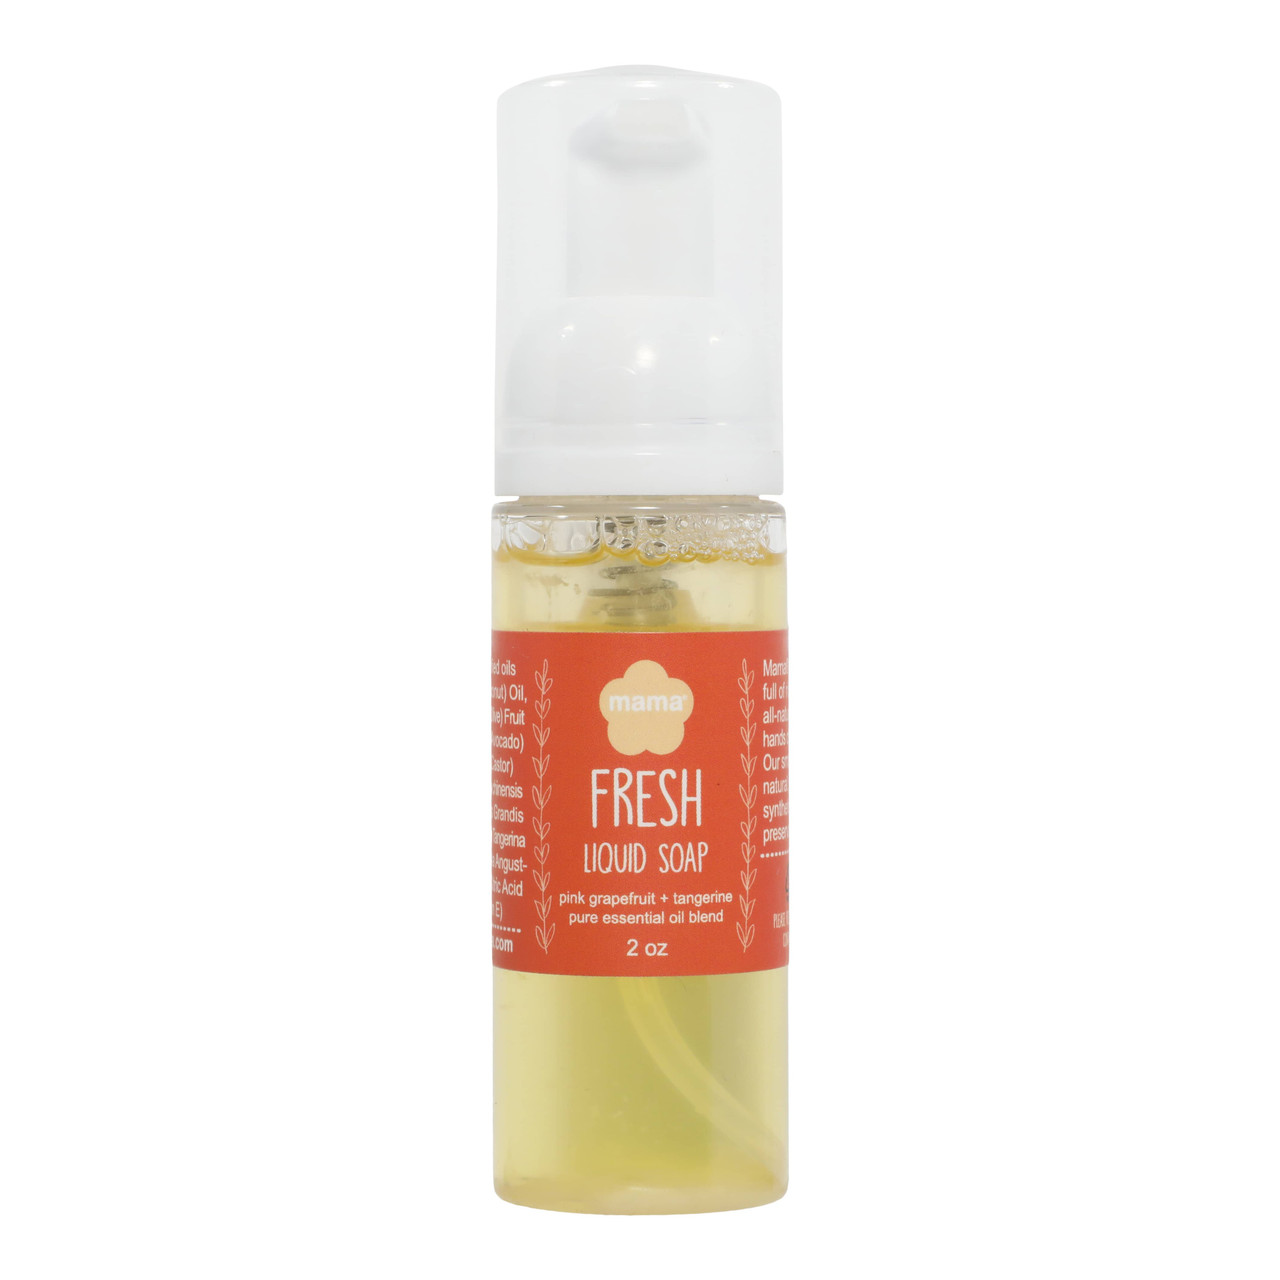 Fresh (Grapefruit + Tangerine) Travel Size Liquid Soap | Mama Bath + Body